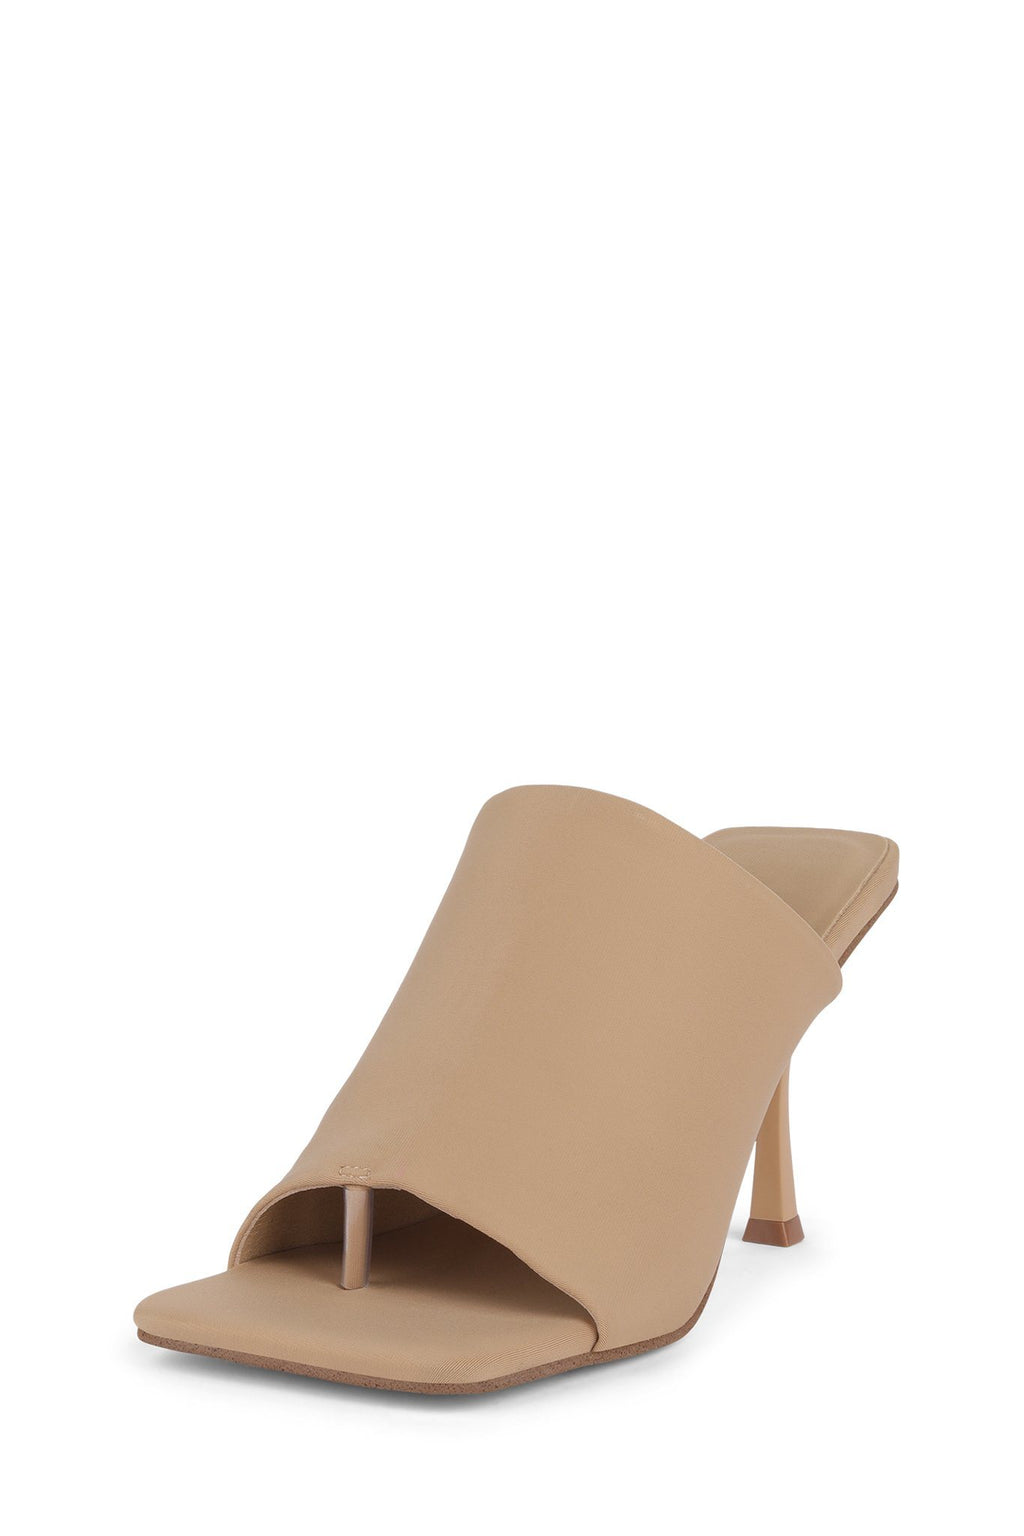 ARTEMESIA Heeled Mule YYH